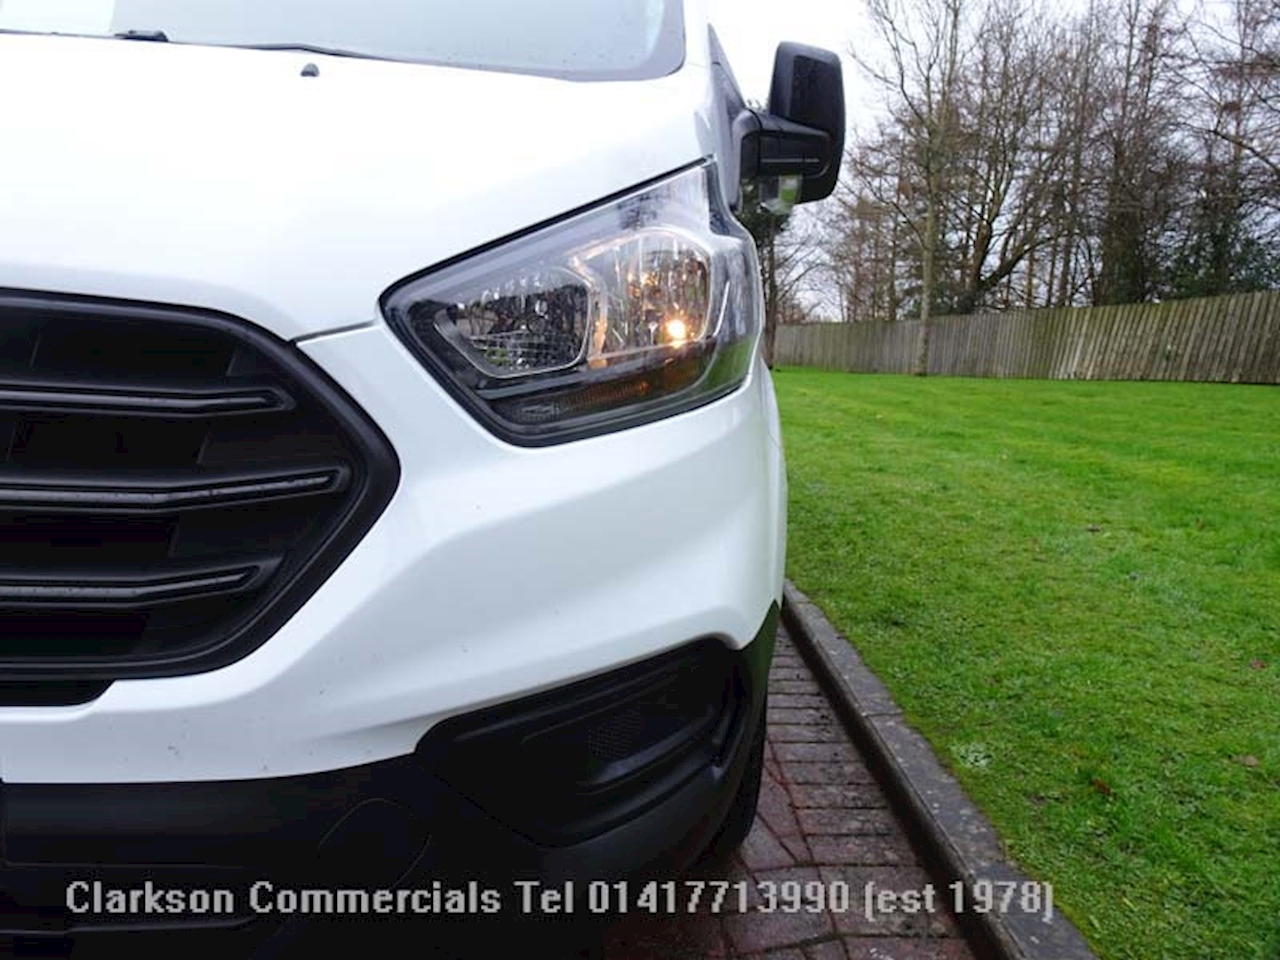 Ford 2.0 300 EcoBlue Panel Van 5dr Diesel Manual L2 H2 EU6 (105 ps)